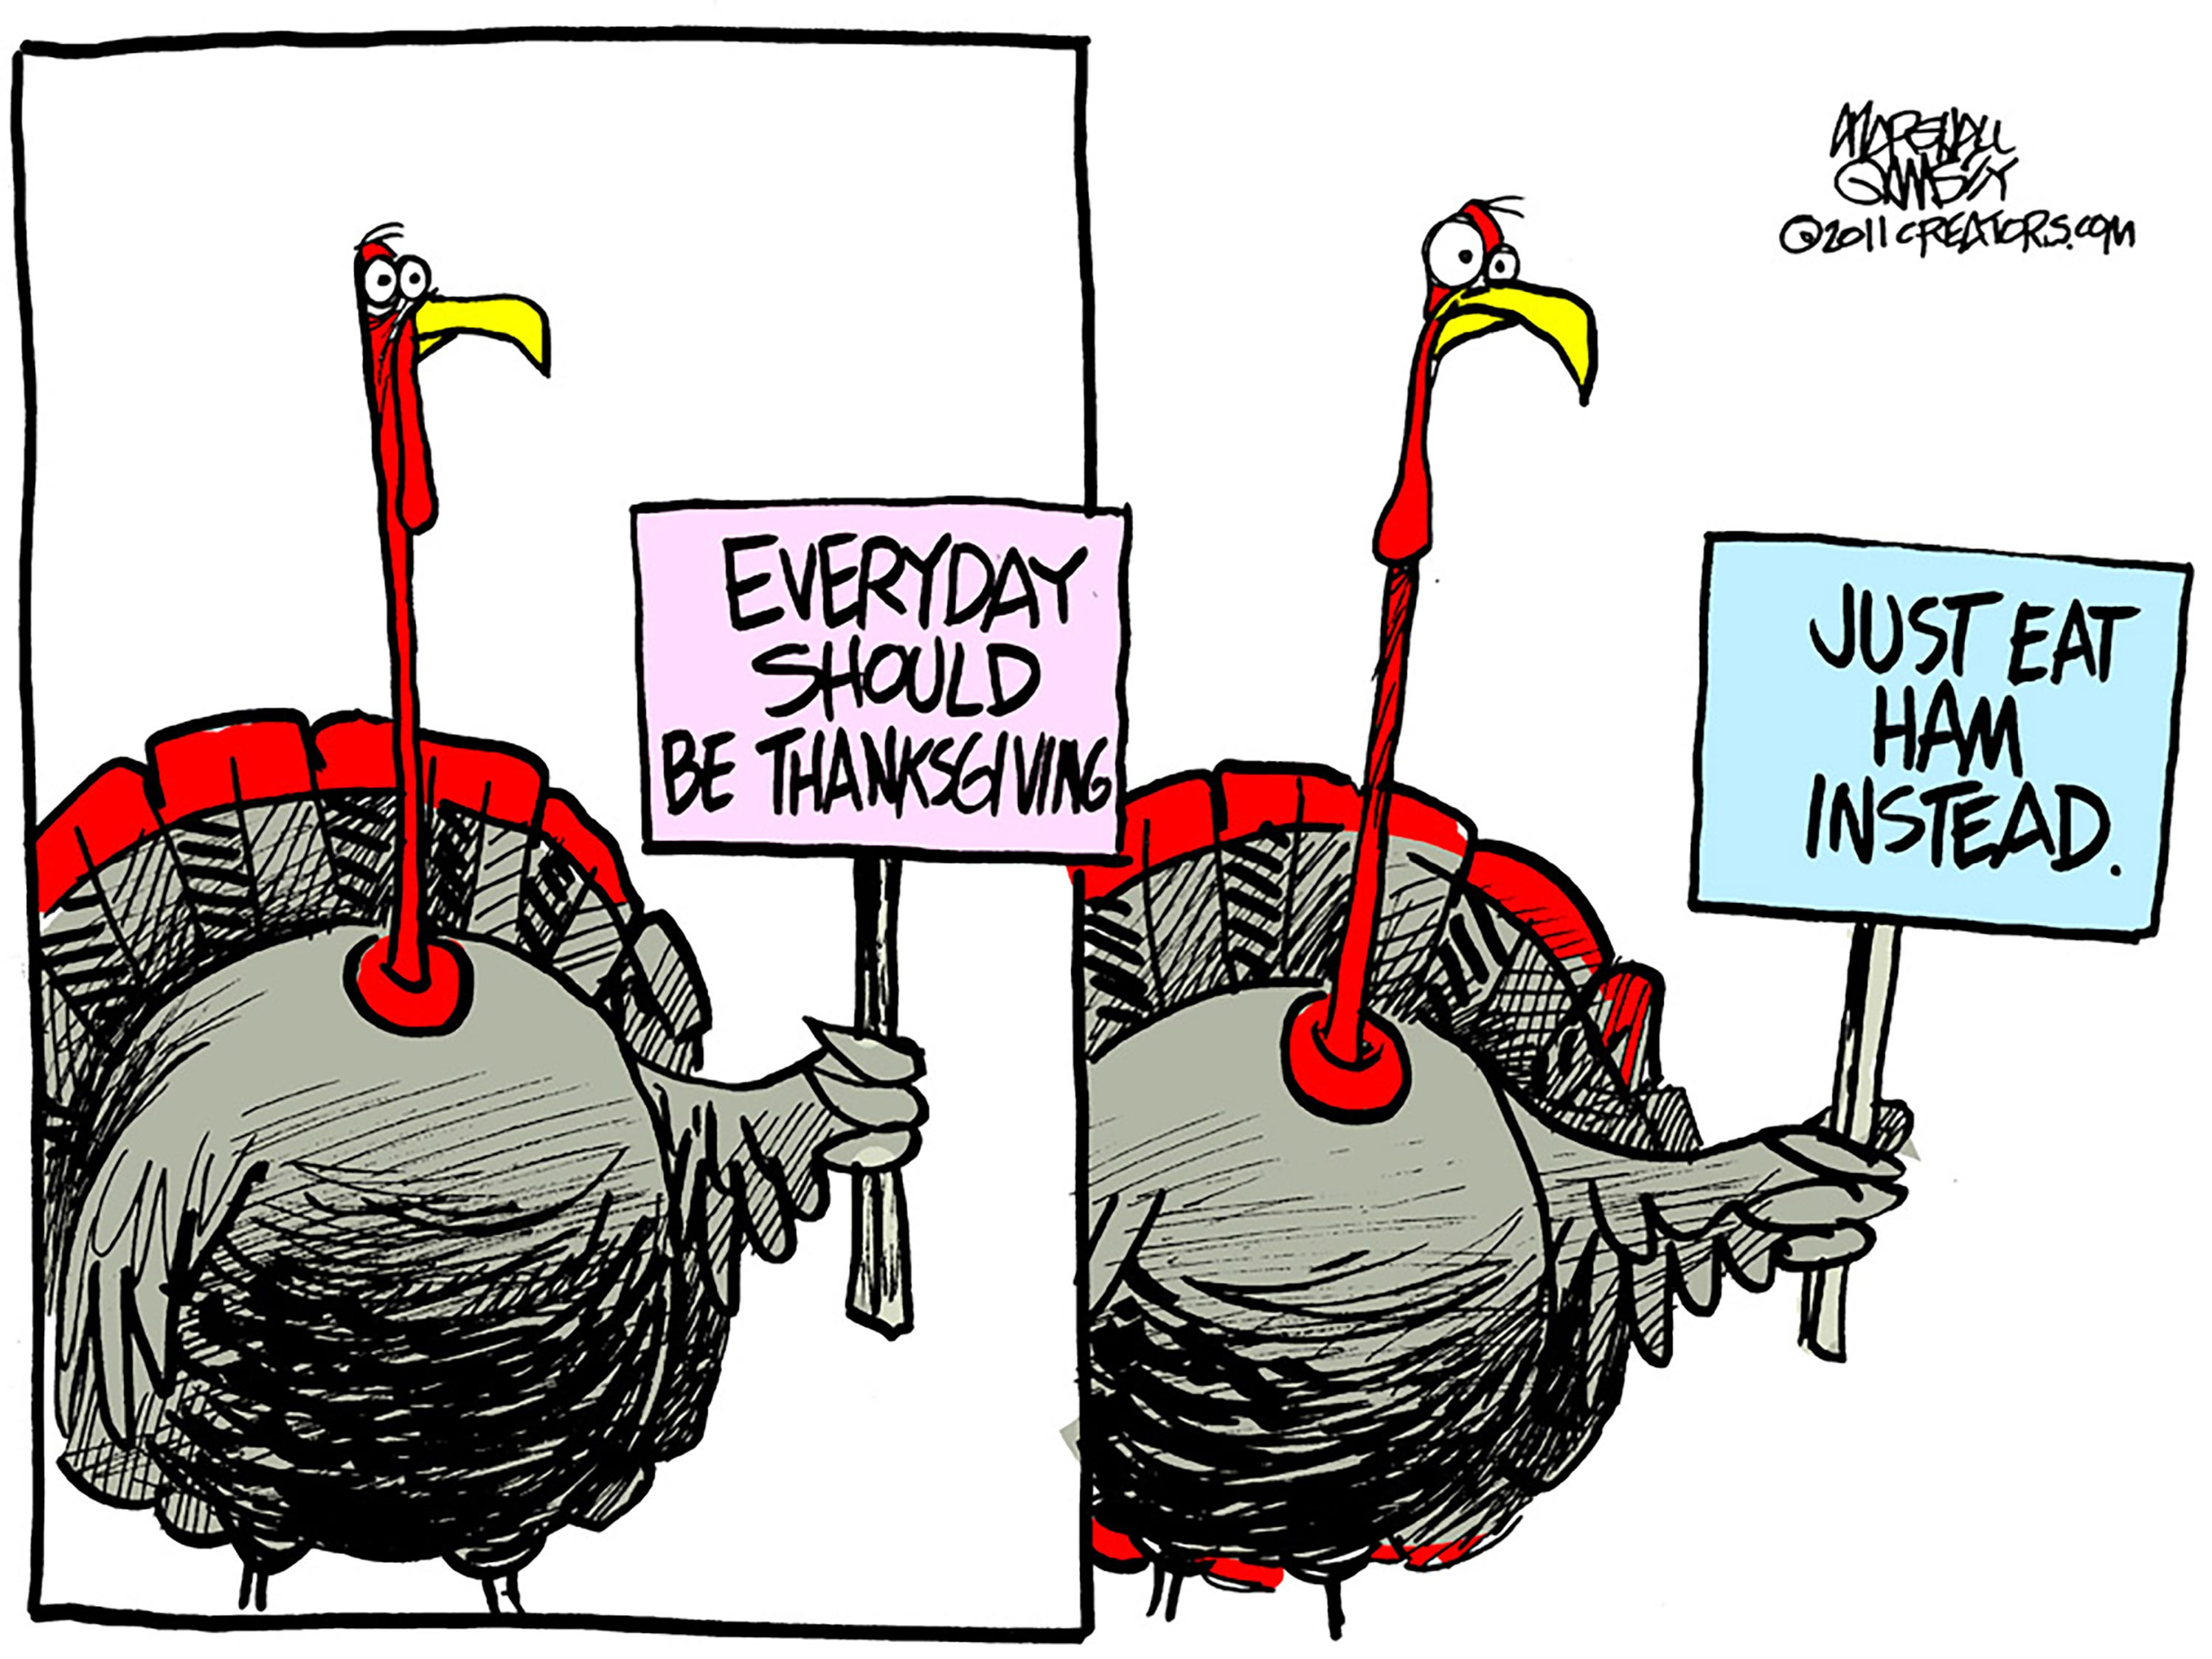 Originally published in 2011. The cartoonist's homepage, clarionledger.com/opinion